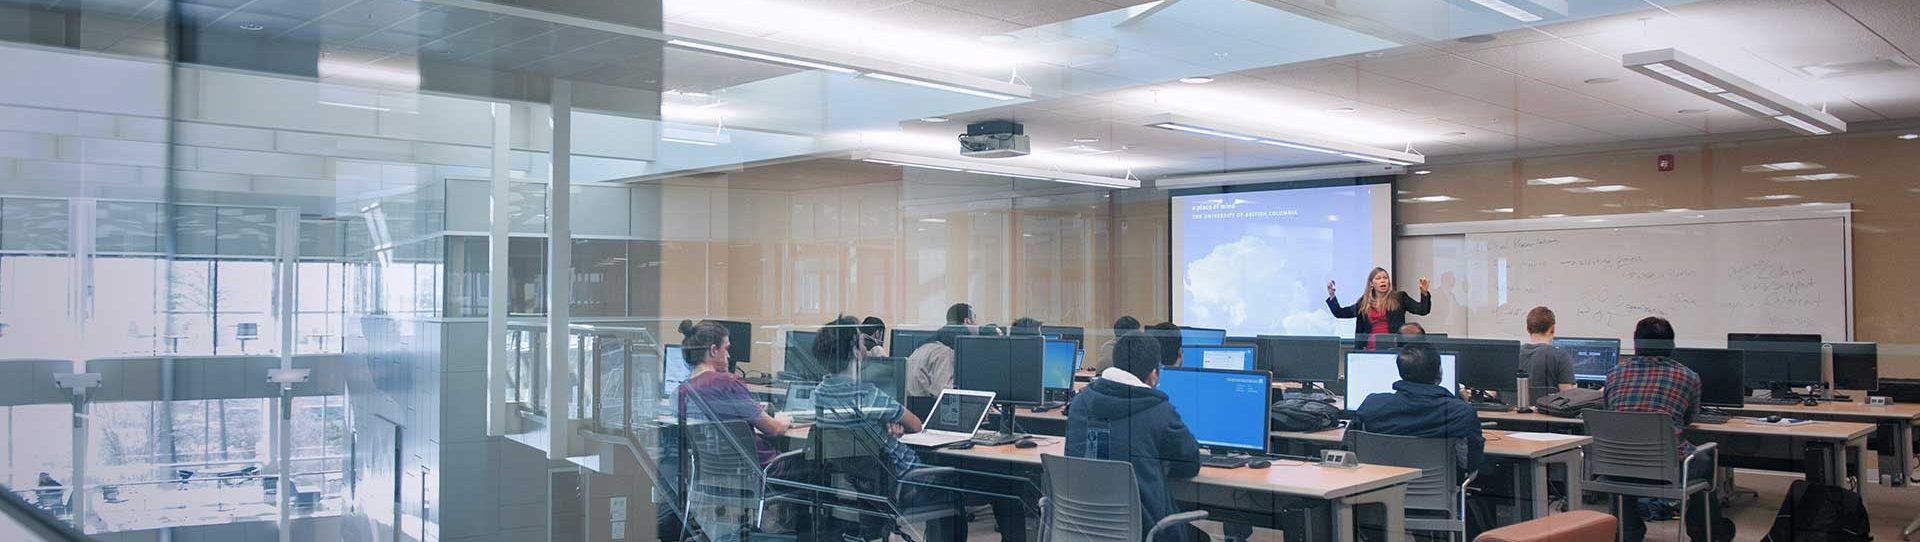 Instructor doing a presentation in computer lab